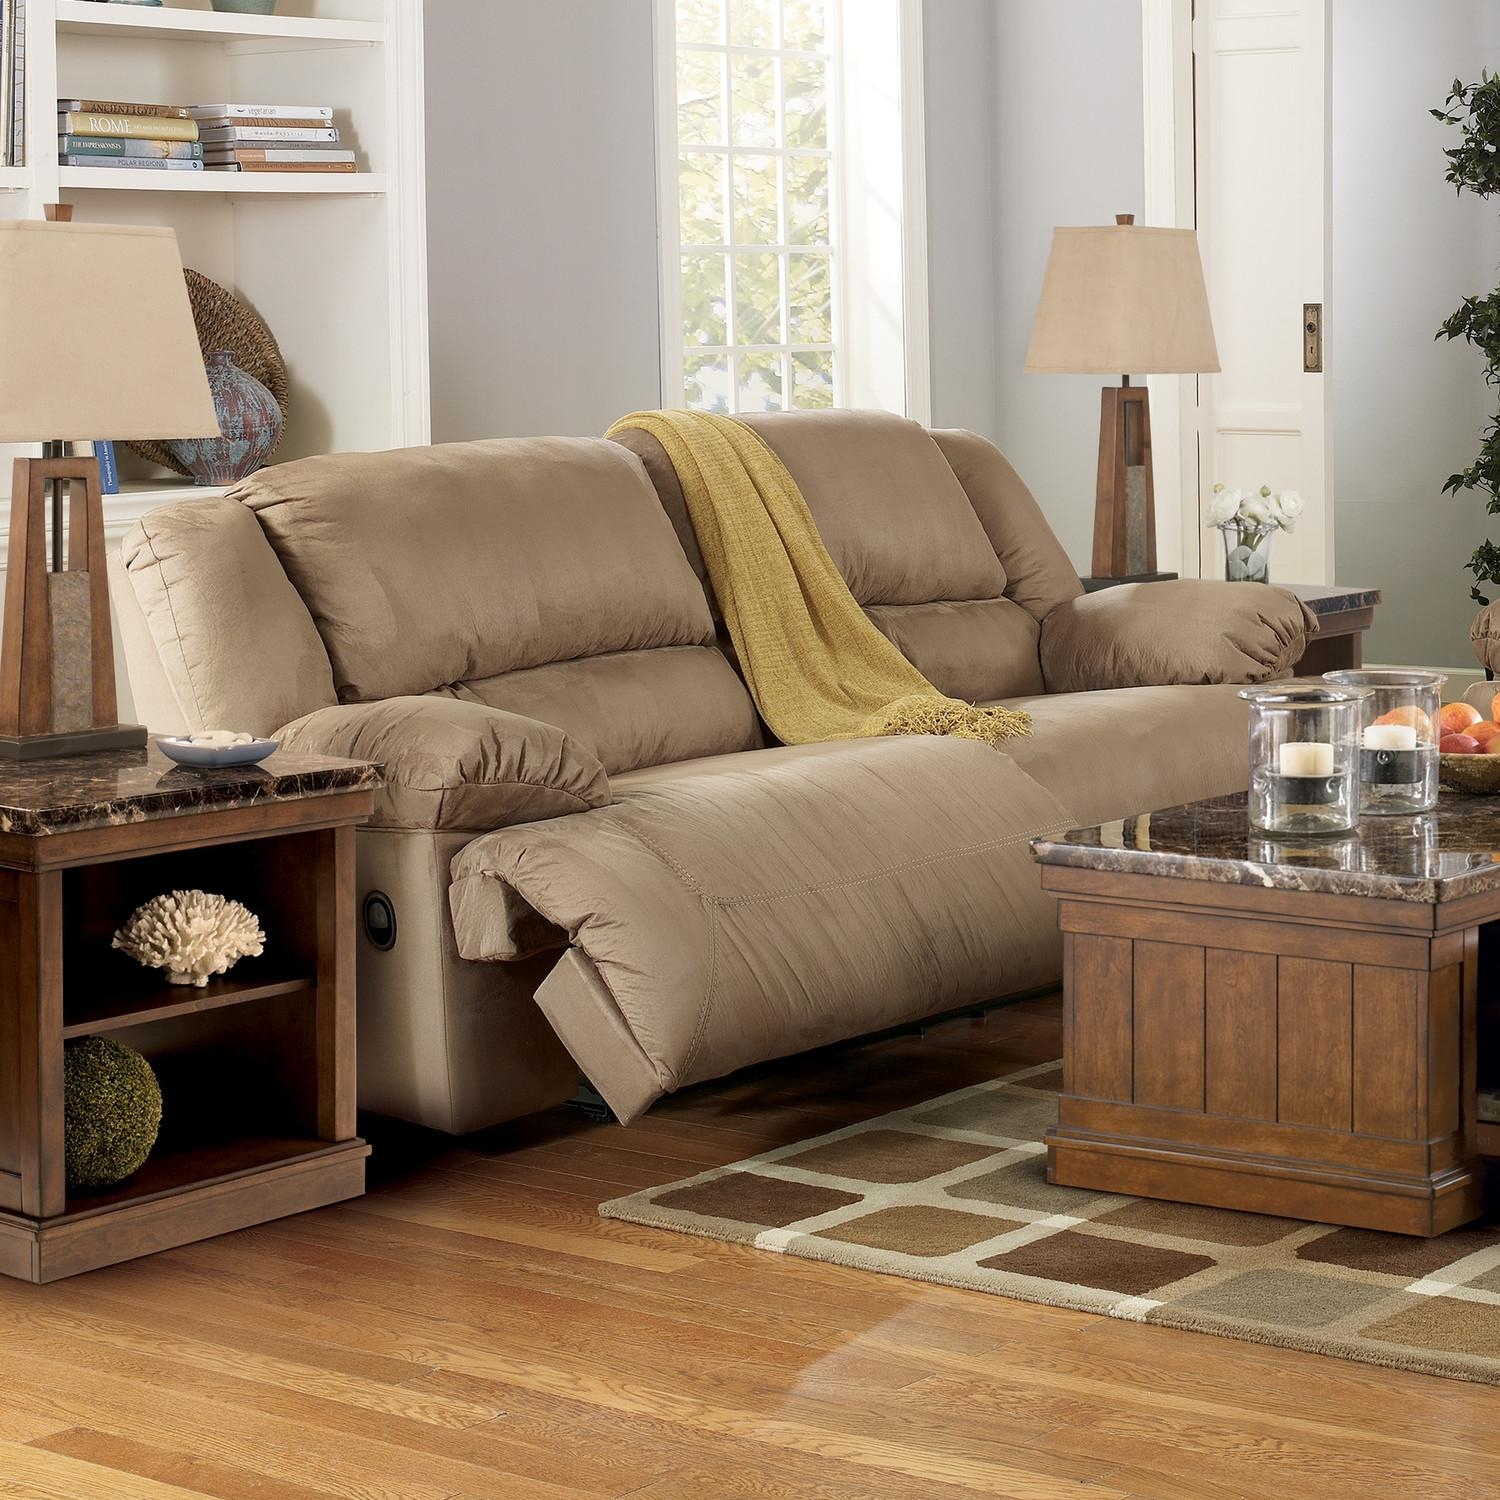 Interior: Big Comfy Sofas And Overstuffed Couches Throughout Big Comfy Sofas (Image 14 of 25)